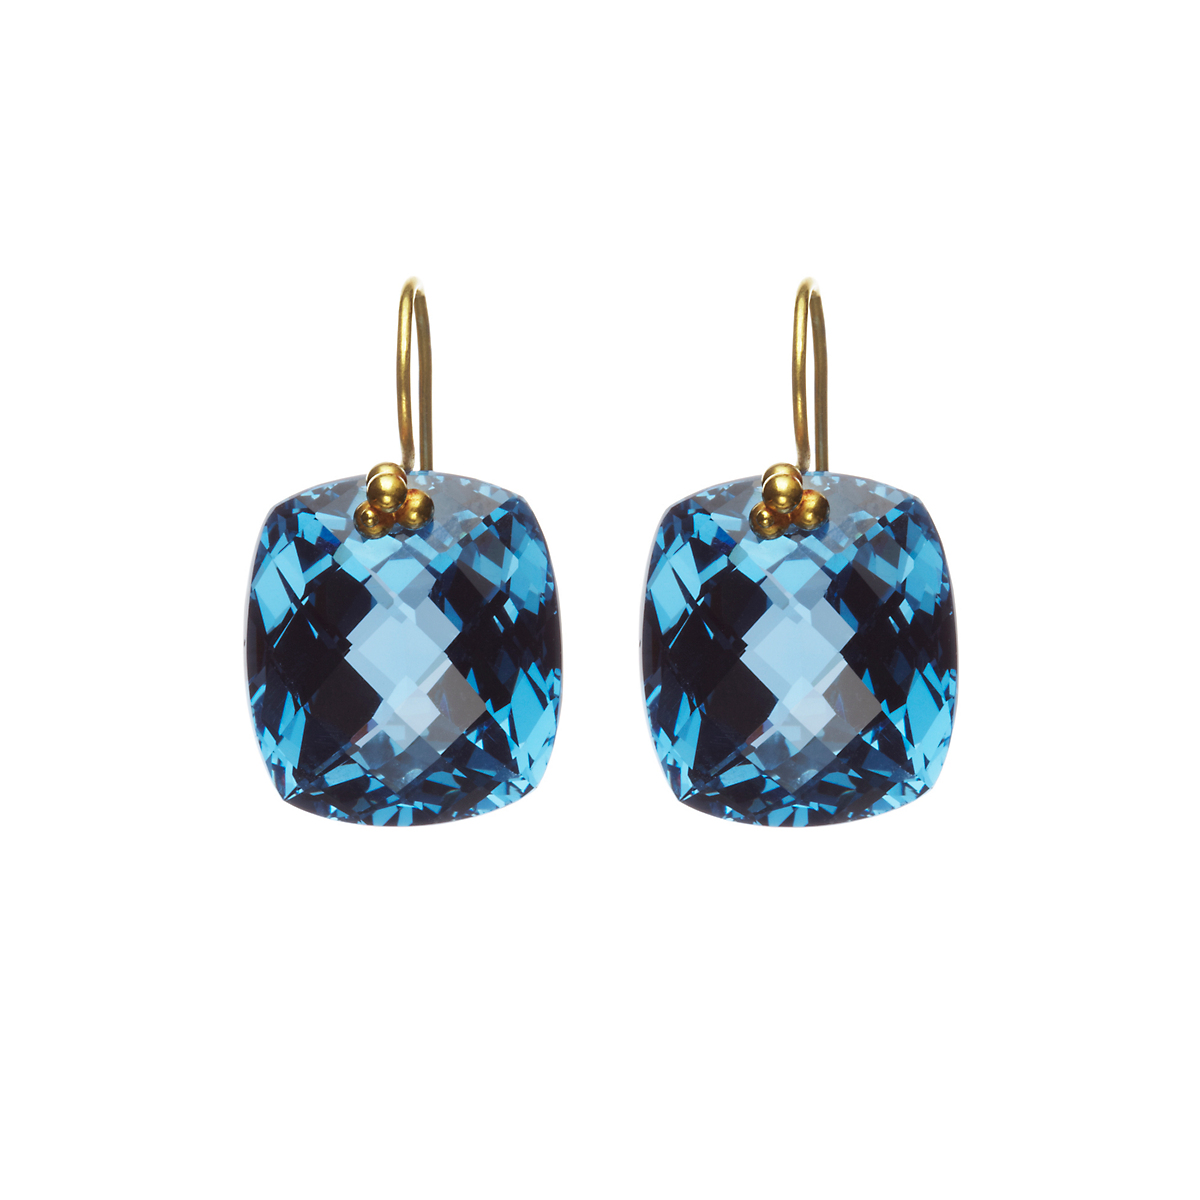 Nikki Baker London Blue Topaz Cushion Drop Earrings